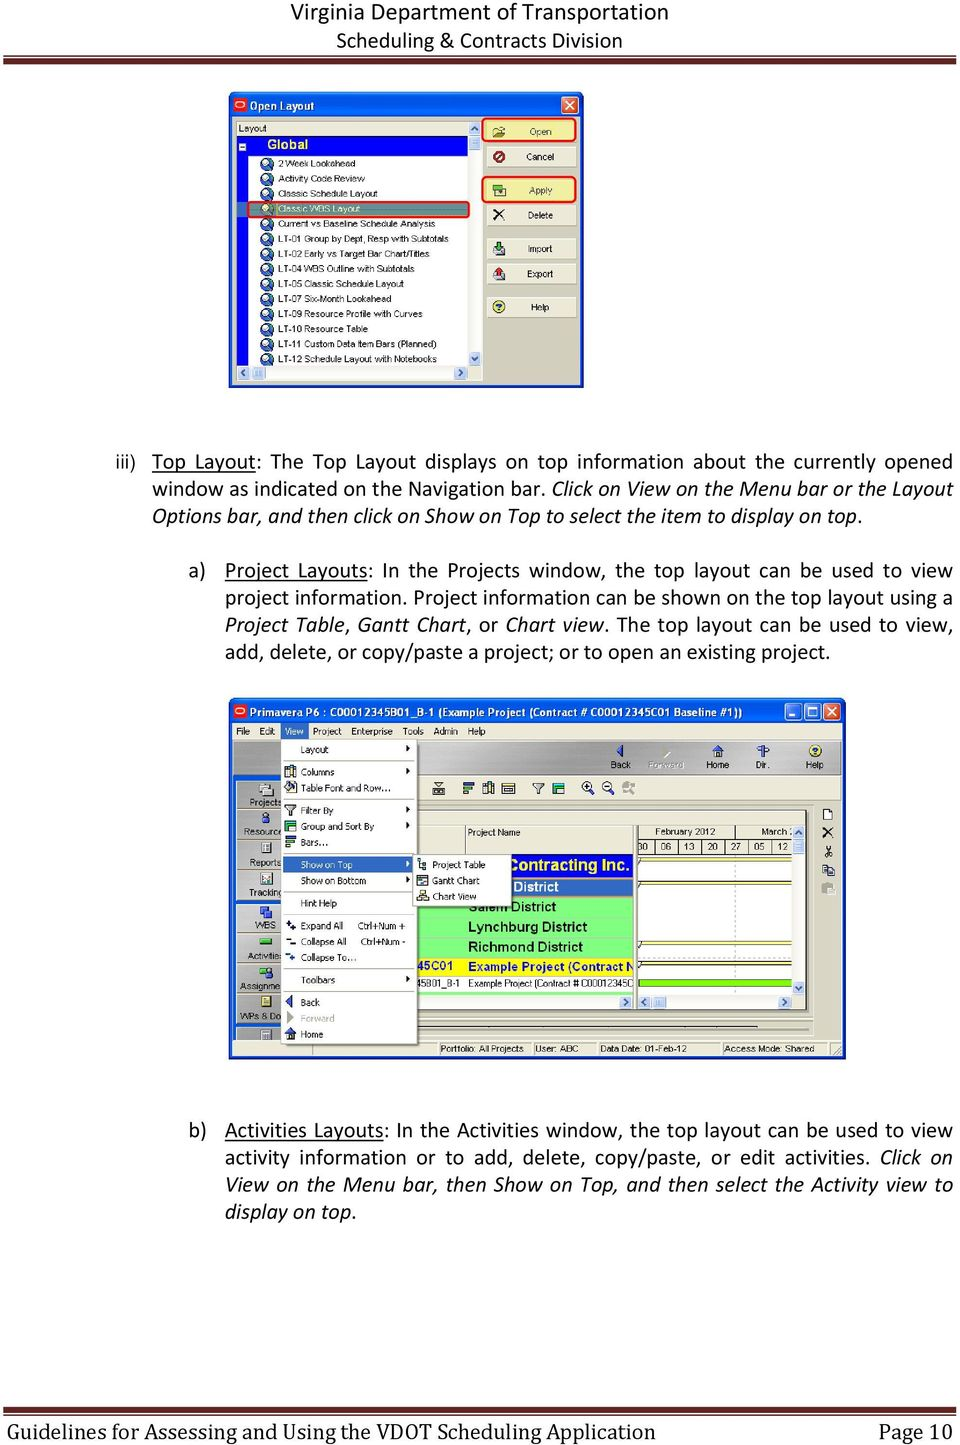 a) Project Layouts: In the Projects window, the top layout can be used to view project information.